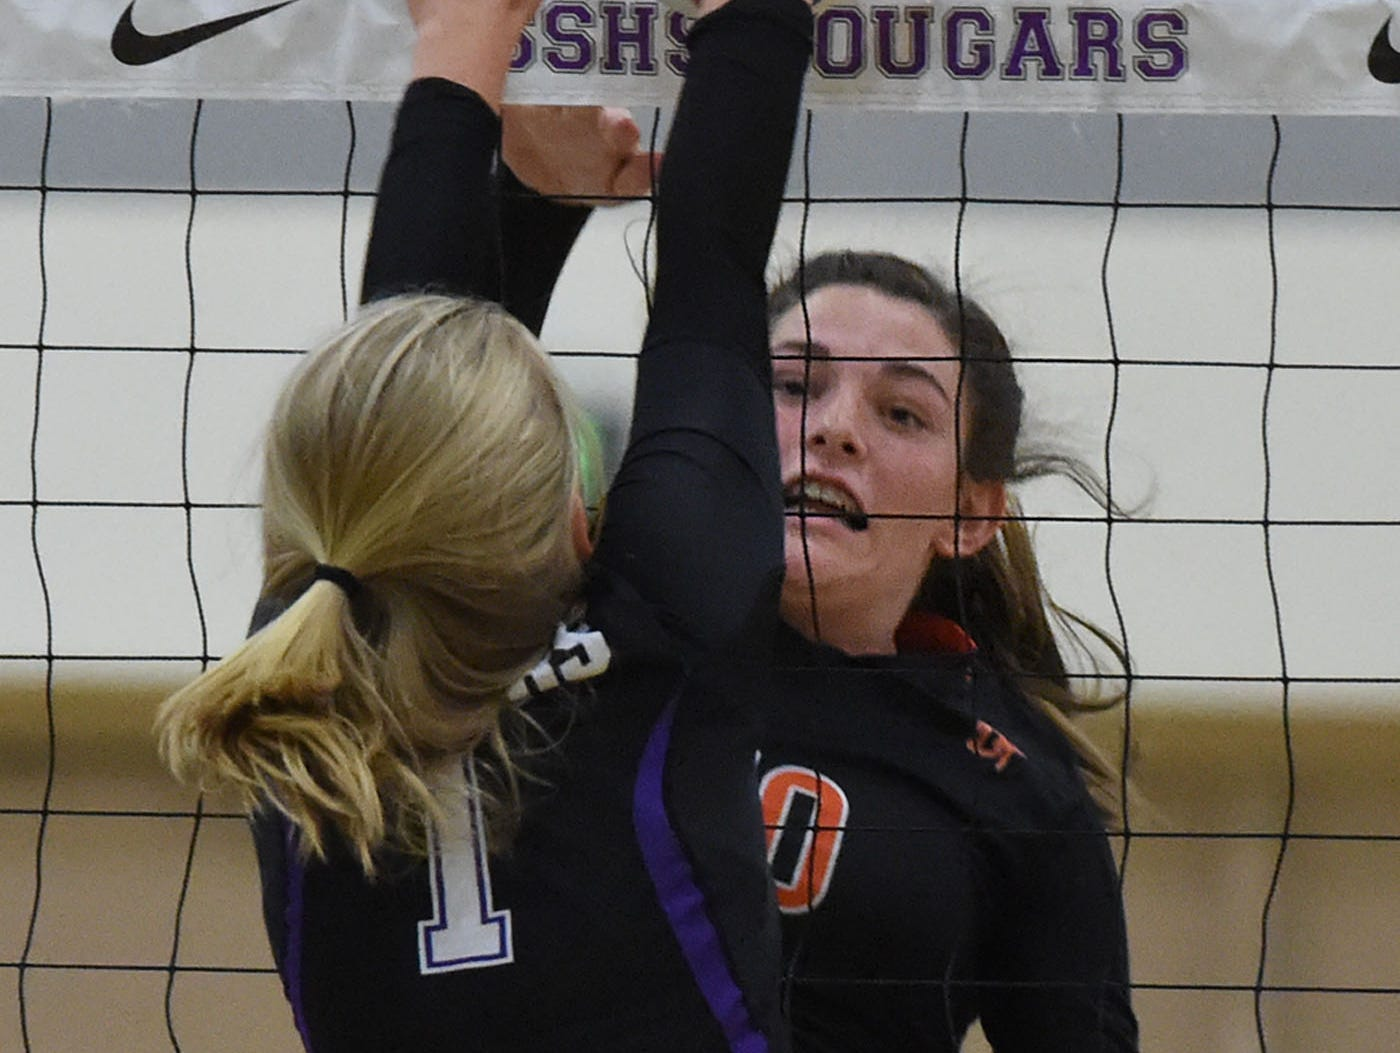 Spanish Springs' Mackenzie O'Connell goes up to block a shot by Douglas' Hailey Hughes in Tuesday's varsity volleyball game at Spanish Springs High School on Sept. 13, 2016.